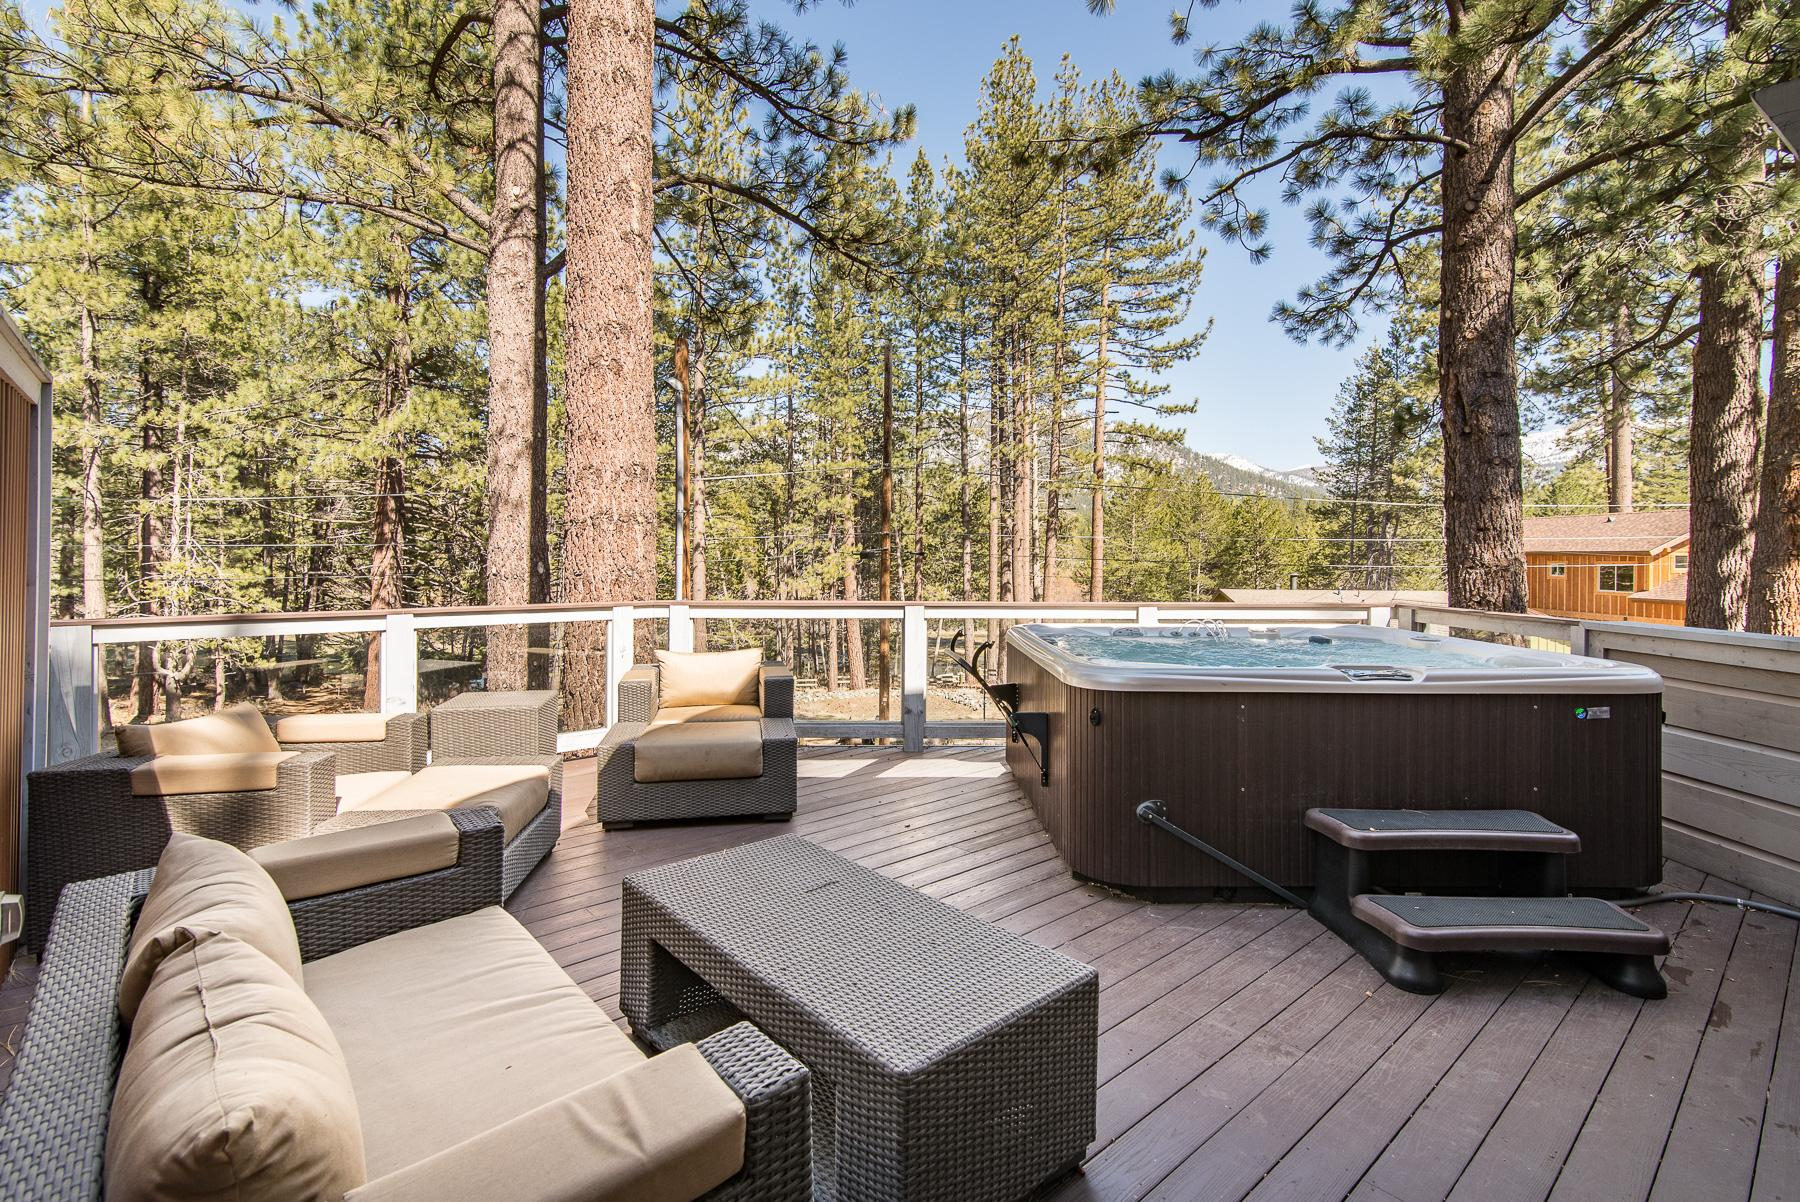 There's plenty of patio furniture for fresh air hangs, along with a hot tub.